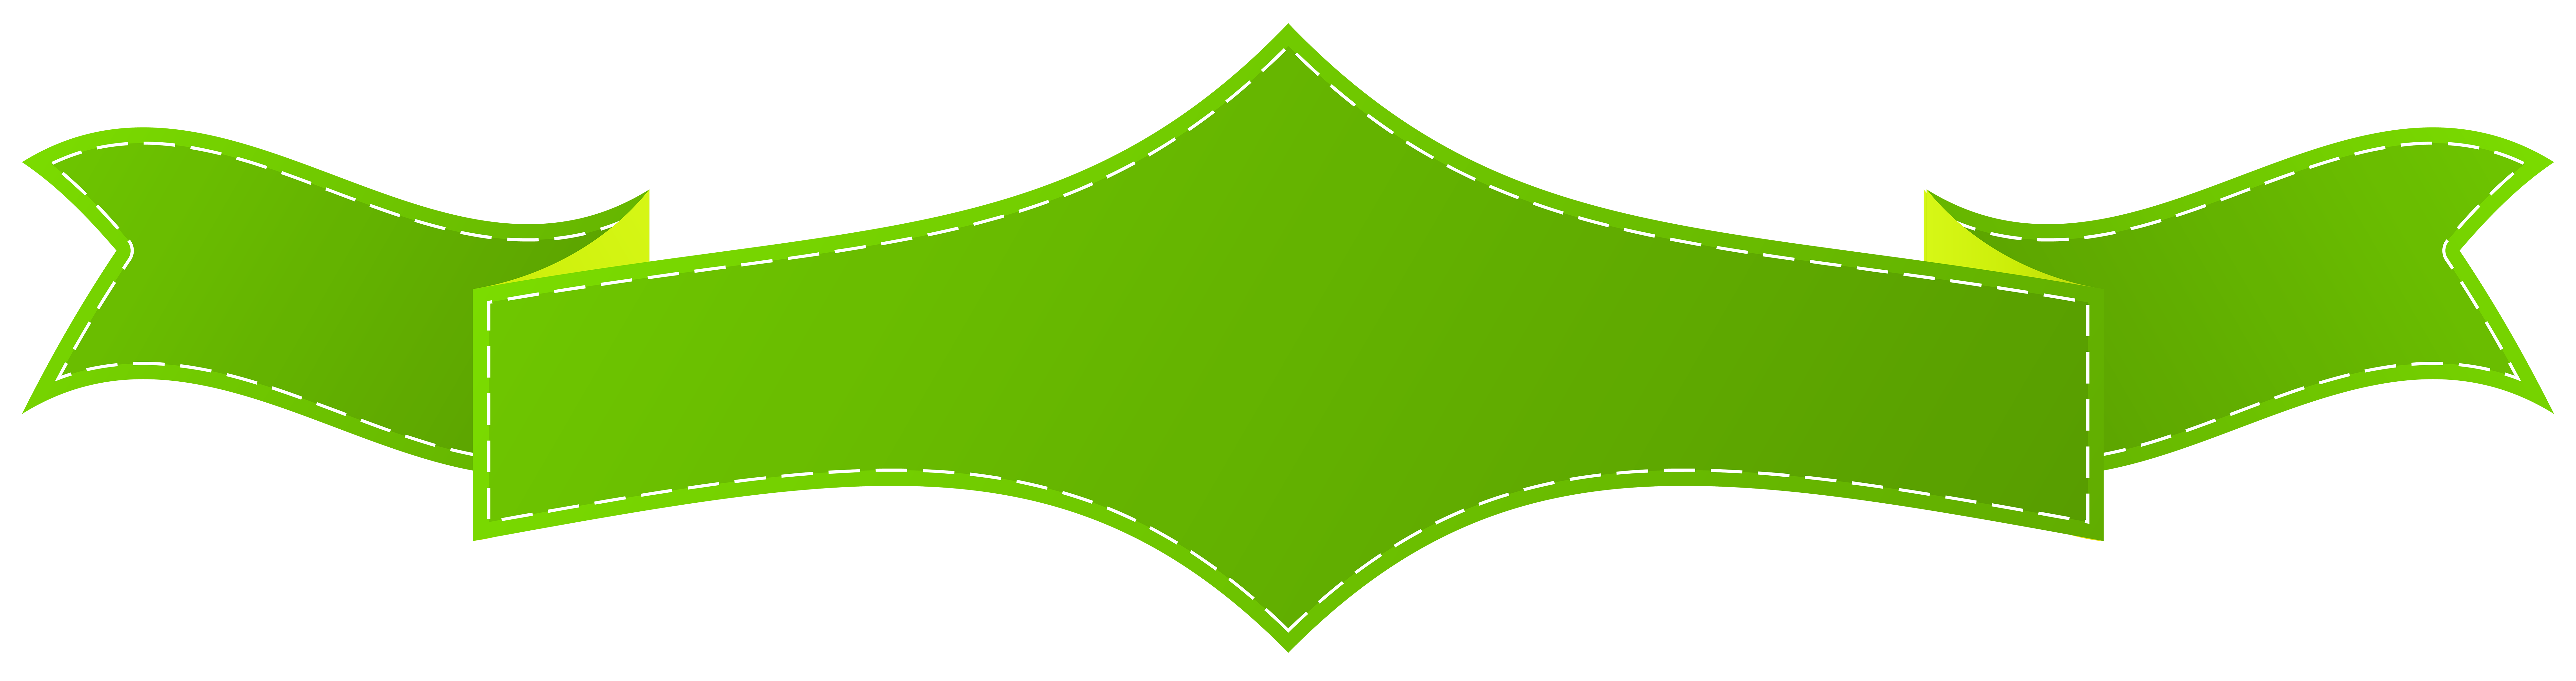 Png clear background. Green banner image with